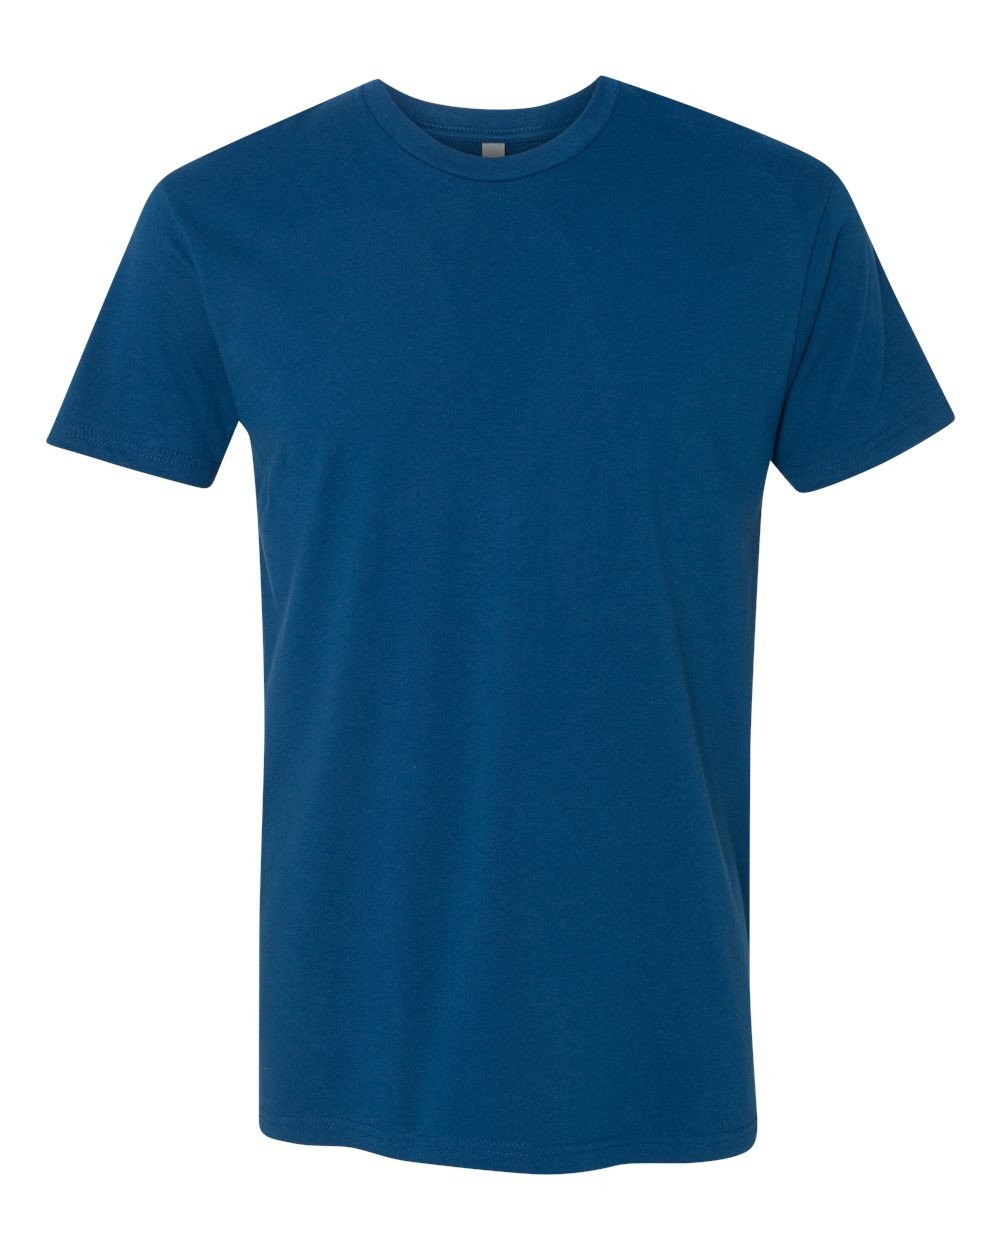 Next Level Mens Premium Fitted Short-Sleeve Crew T-Shirt - 2X Plus - Cool Blue